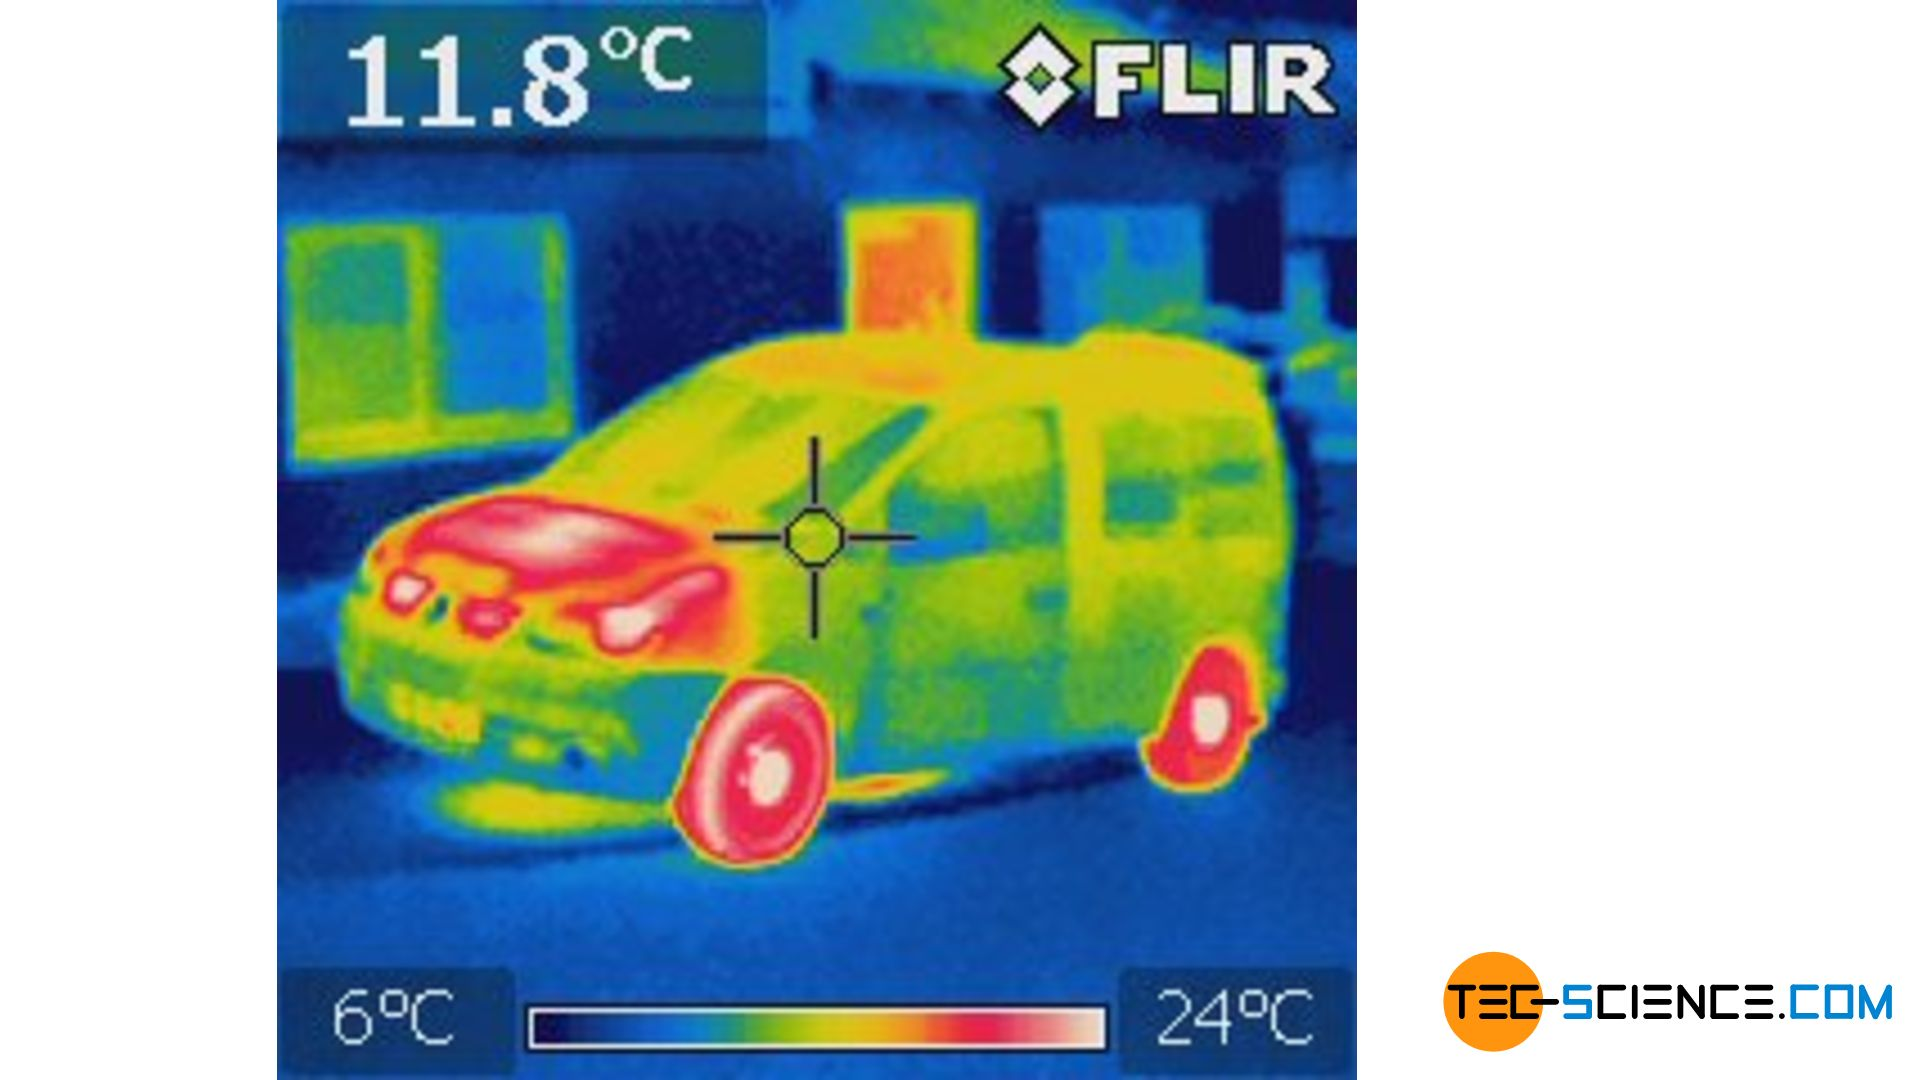 Thermographic image of a car